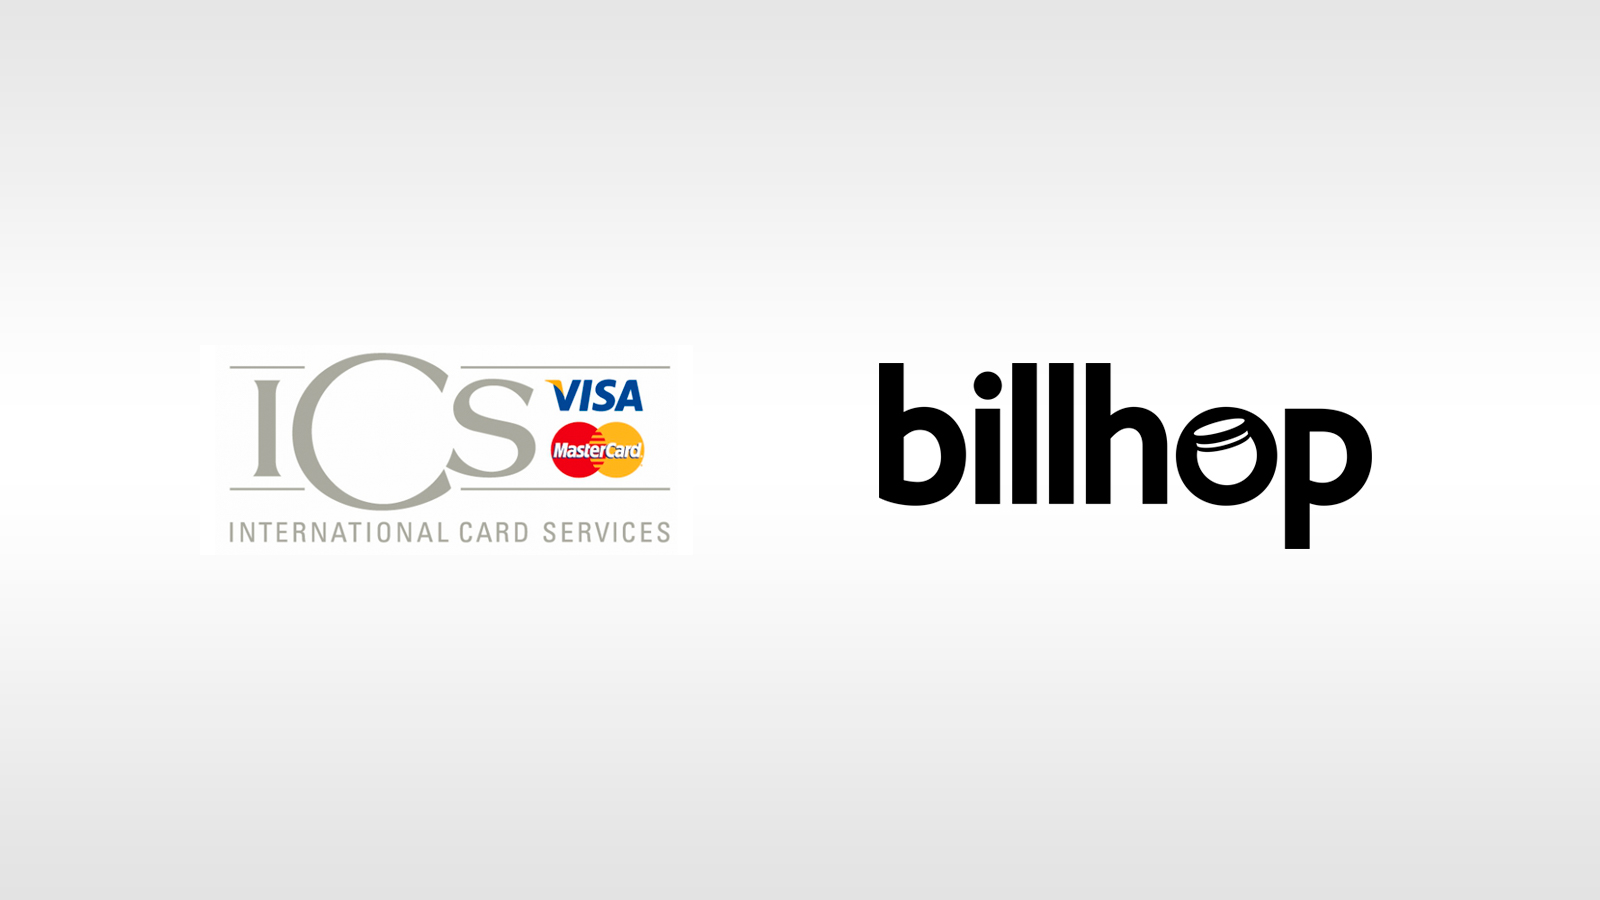 Billhop and ICS Partner to Improve Working Capital for SMEs Across the Netherlands